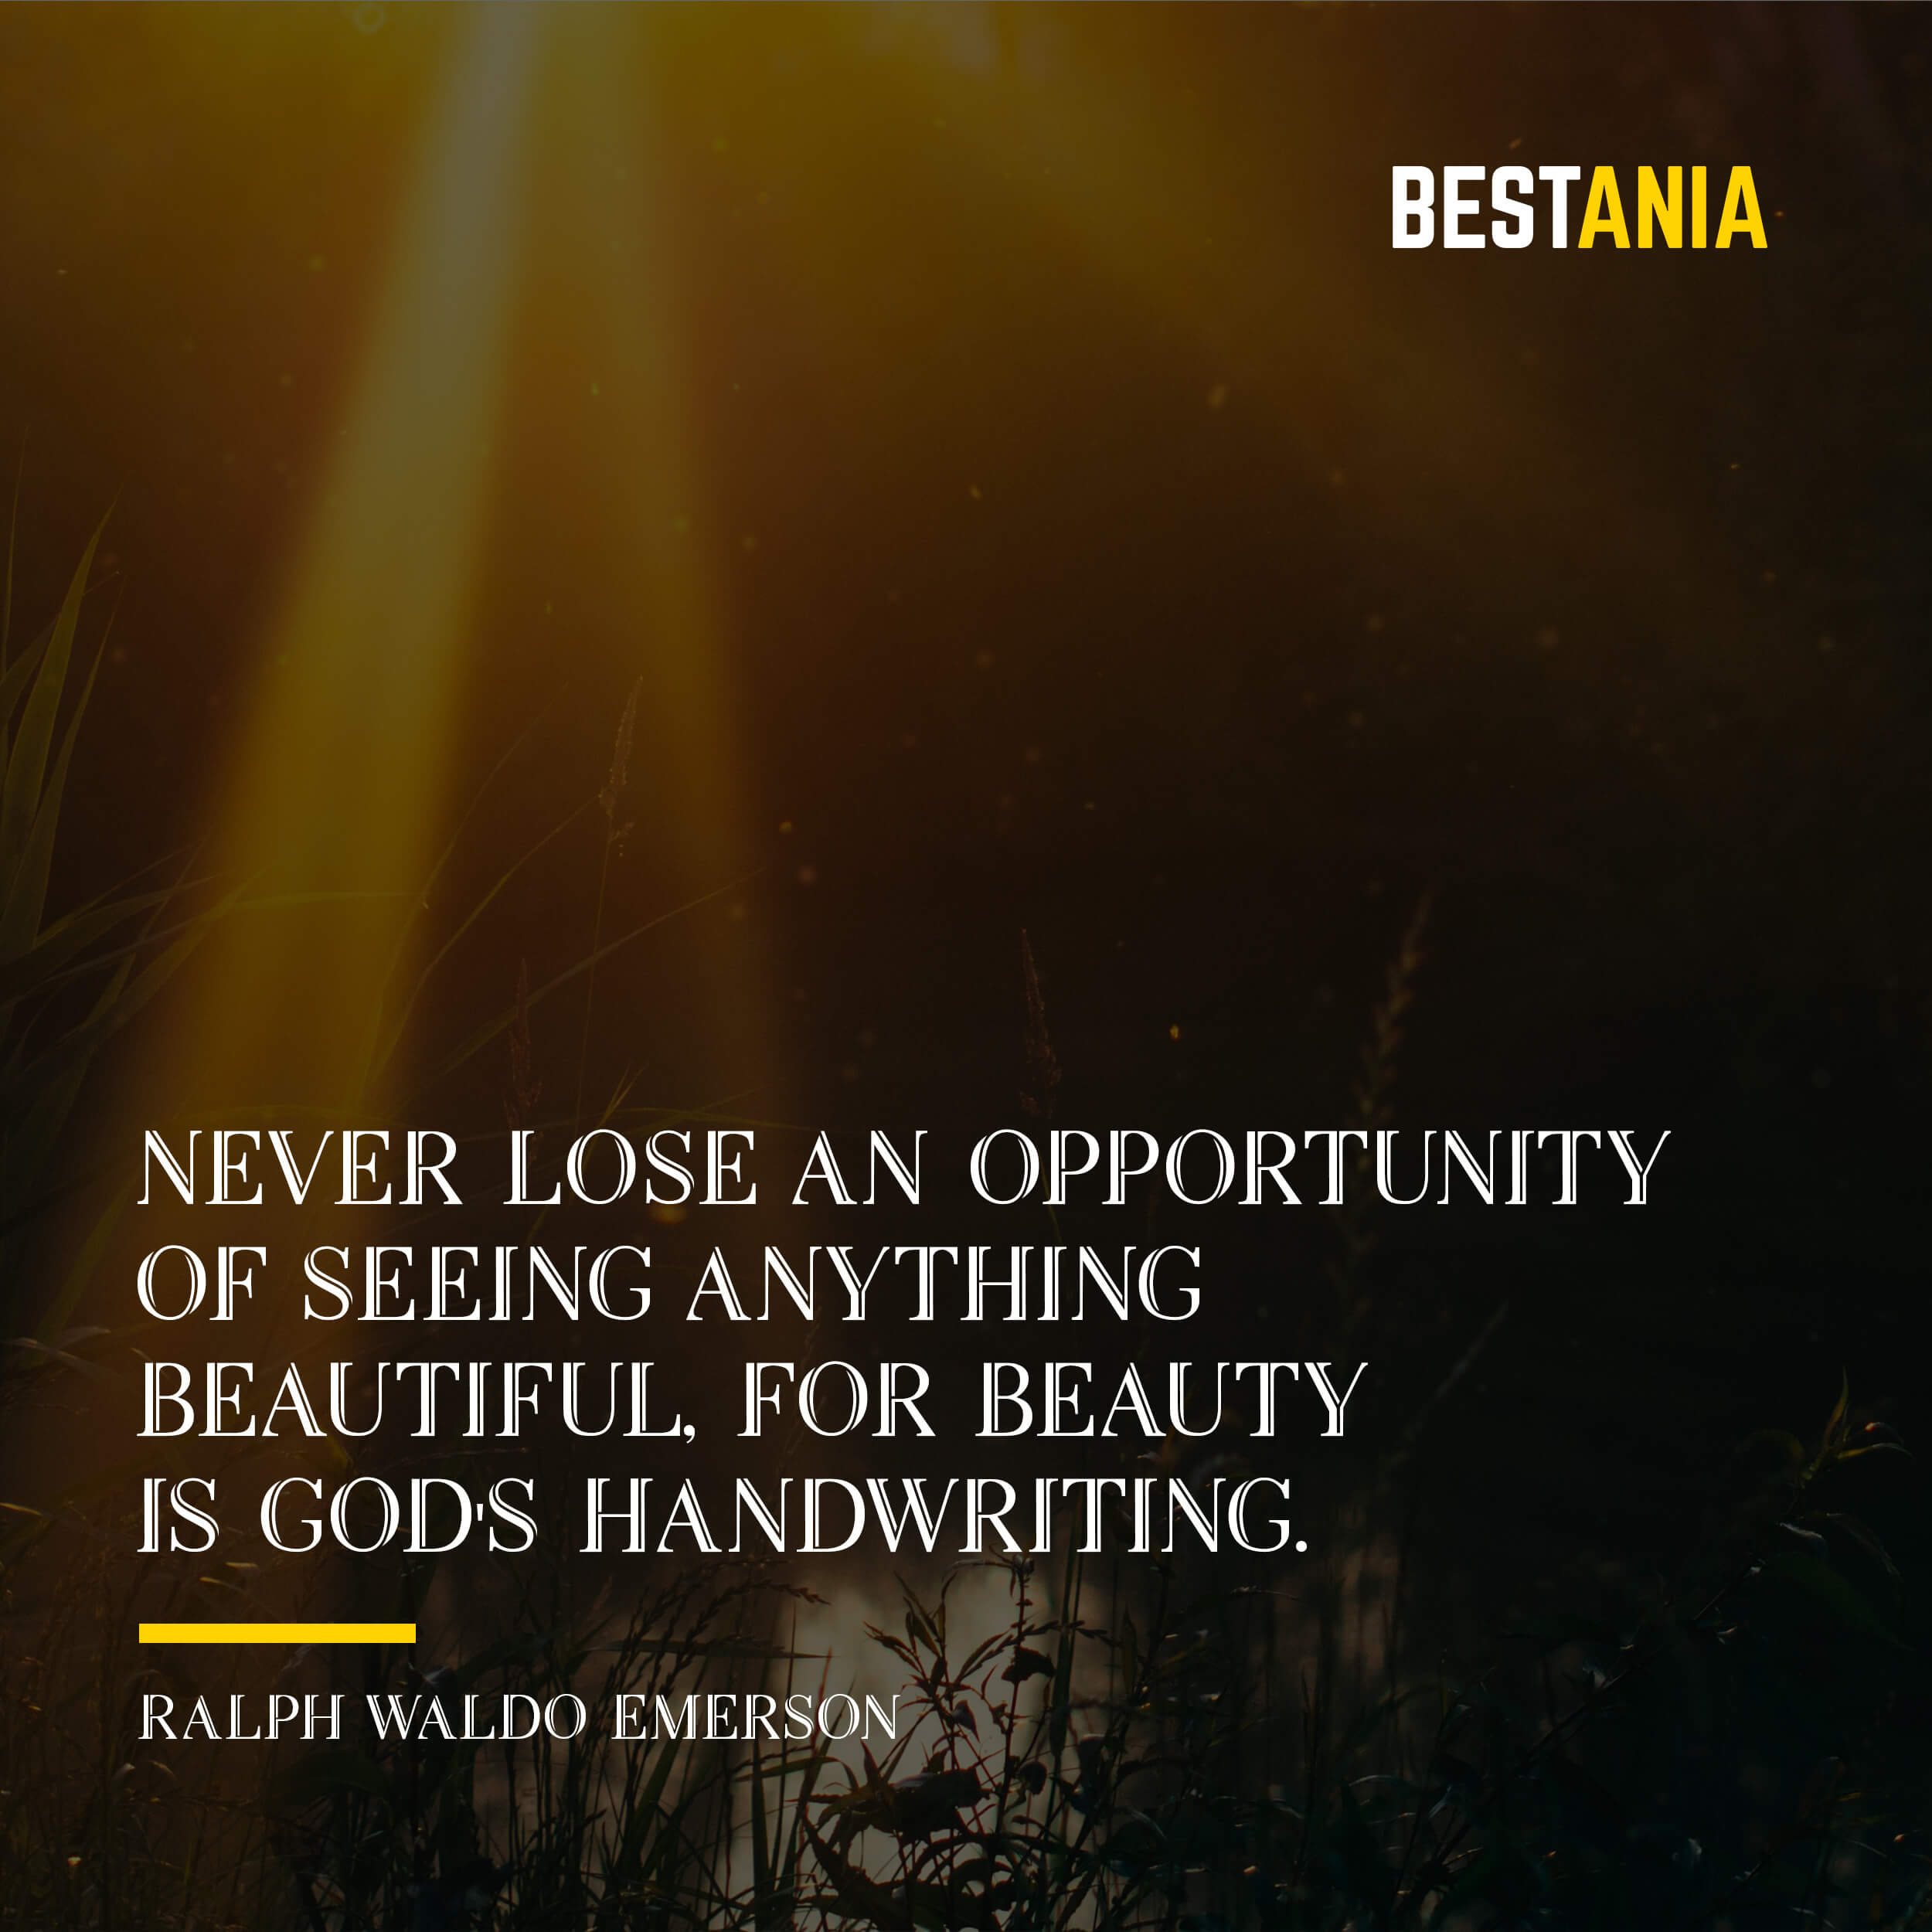 """NEVER LOSE AN OPPORTUNITY OF SEEING ANYTHING BEAUTIFUL, FOR BEAUTY IS GOD'S HANDWRITING."" RALPH WALDO EMERSON"